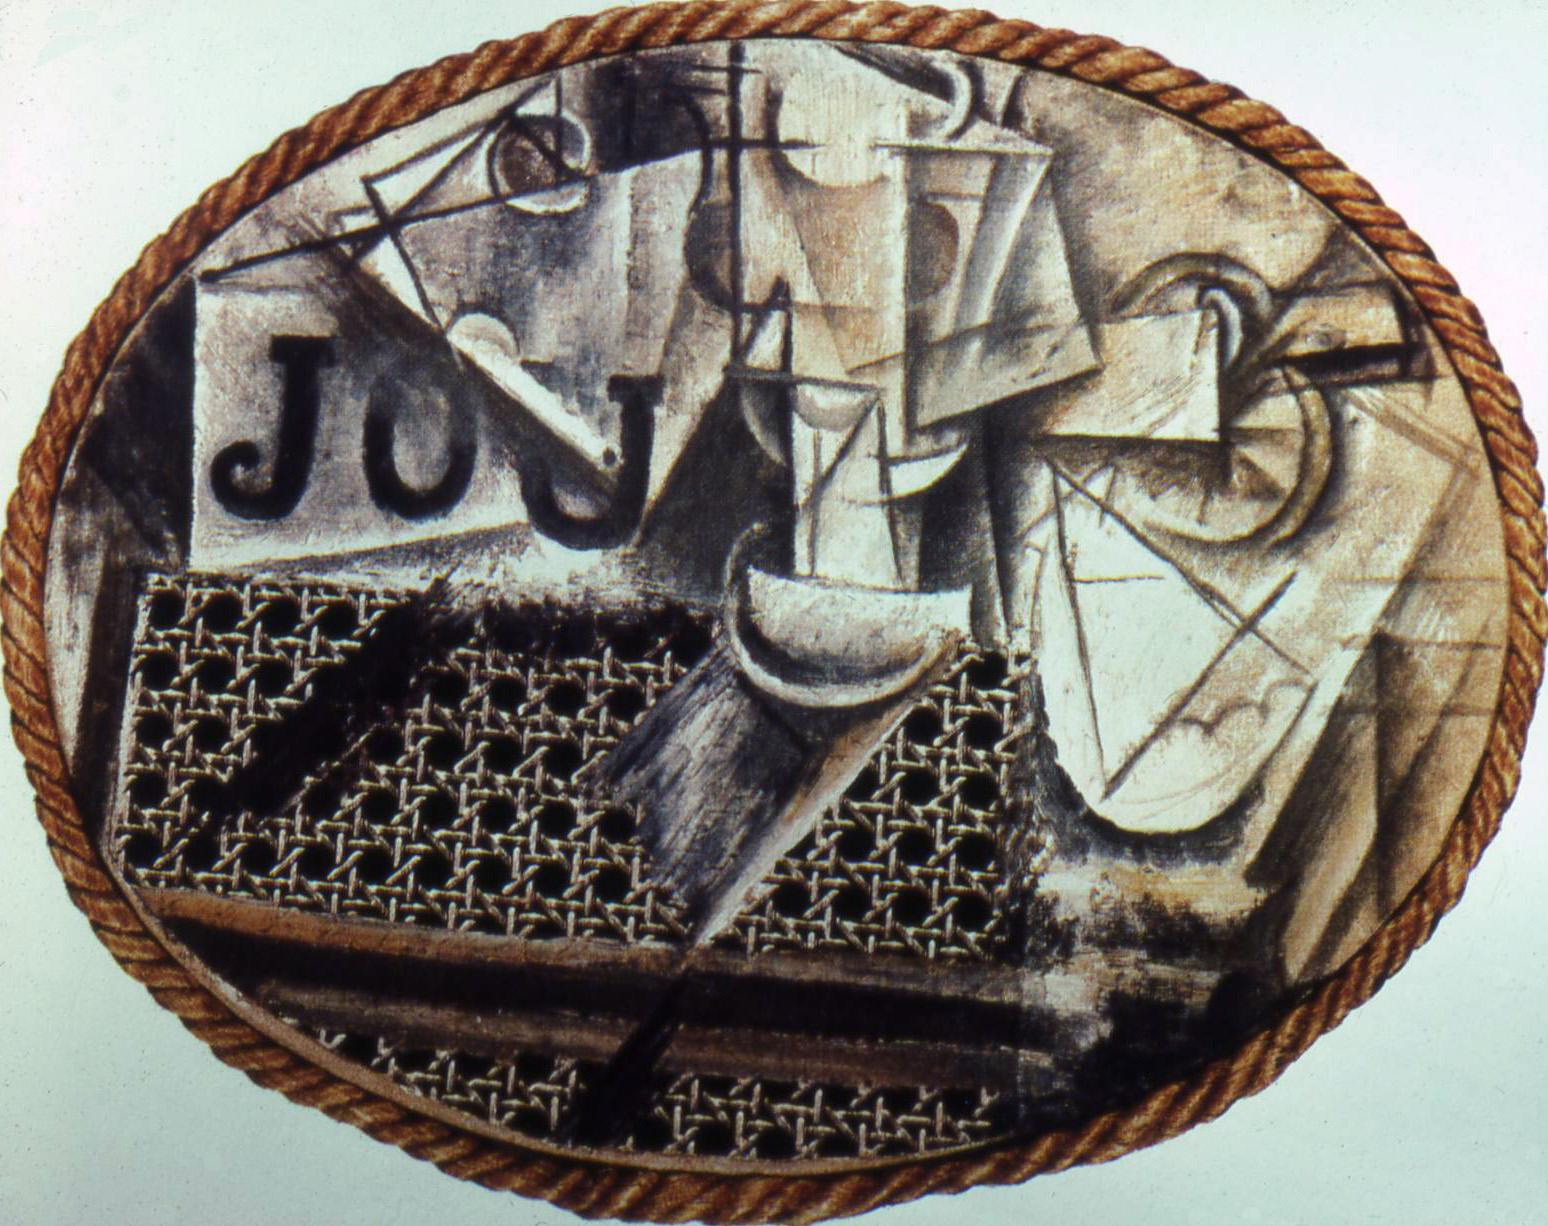 picasso still life with chair caning